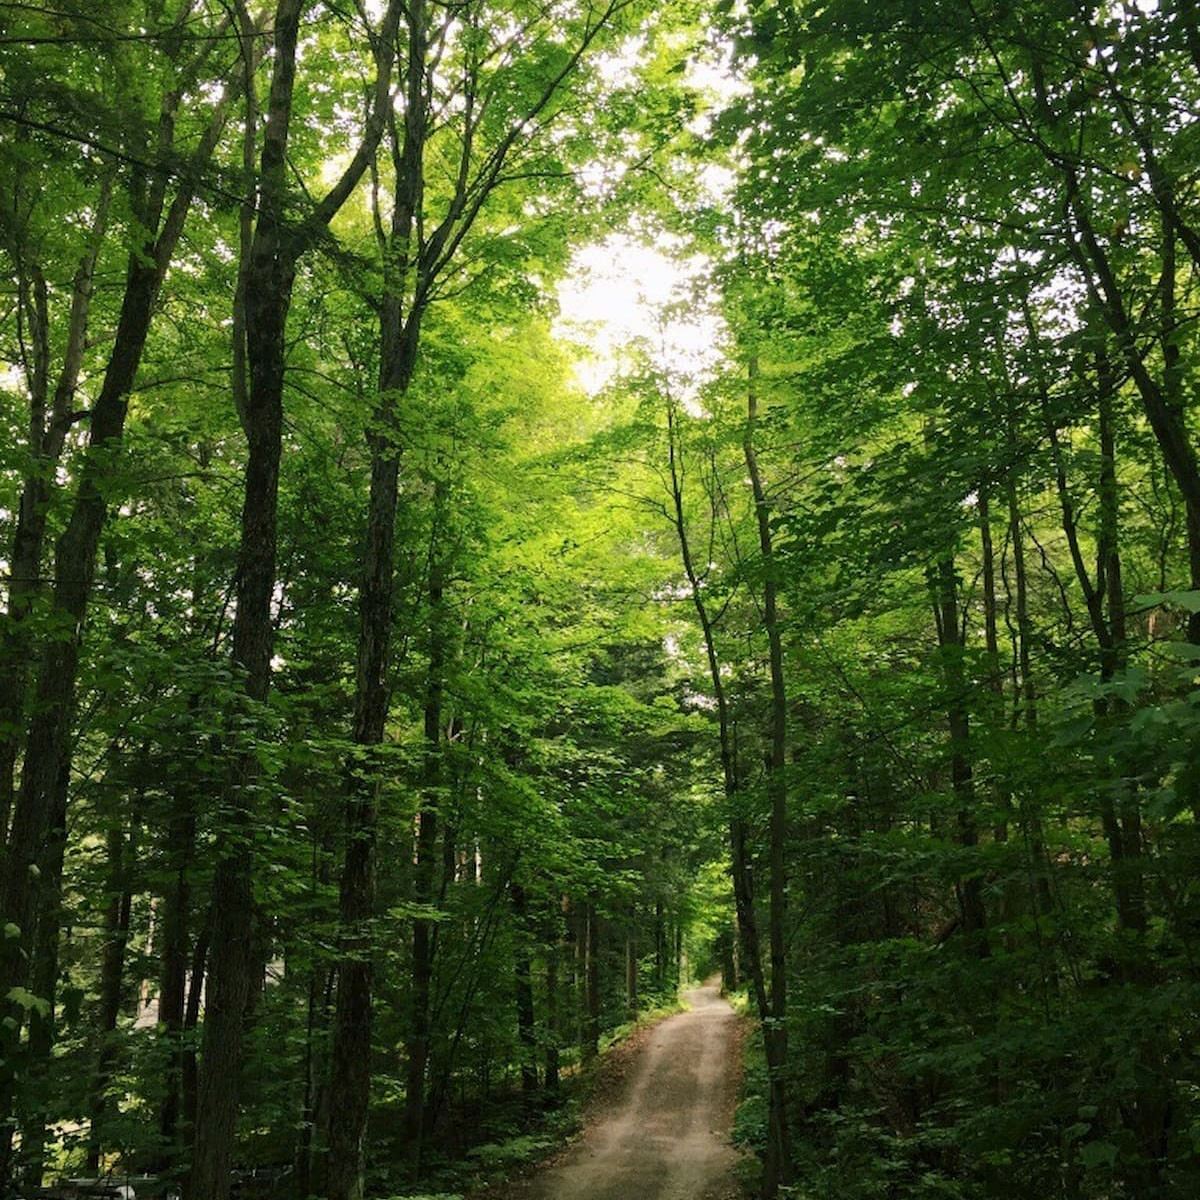 Claire Wortsman '20 captures a beautiful sunny day during a walk in Muskoka, Ontario.